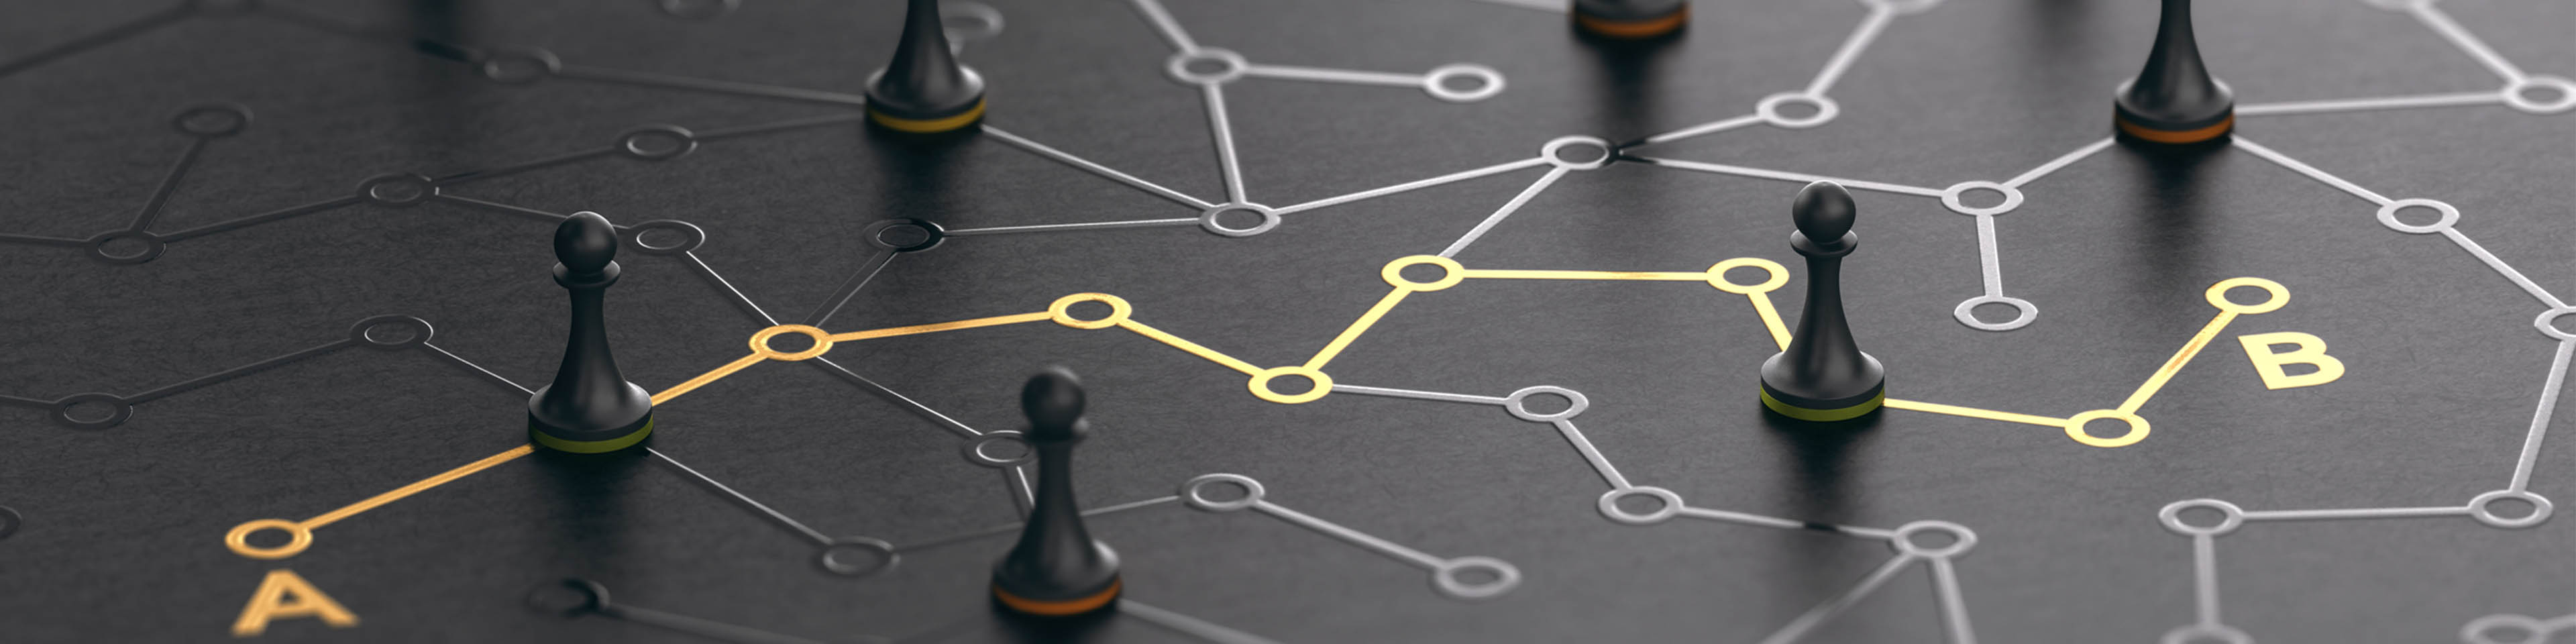 Making Tax Digital Strategies for 2023 and Beyond